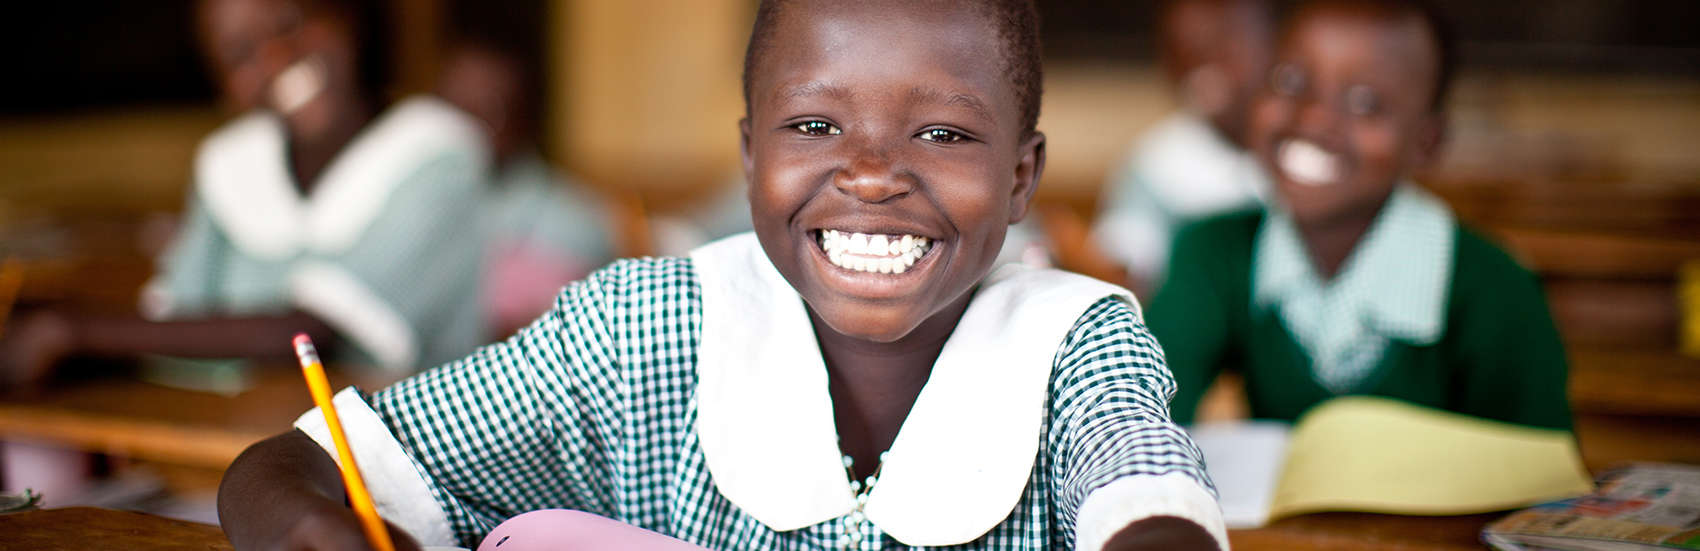 Betty Epur is a 9 year-old girl studying at a Save the Children school in Moroto, Karamoja, Uganda.